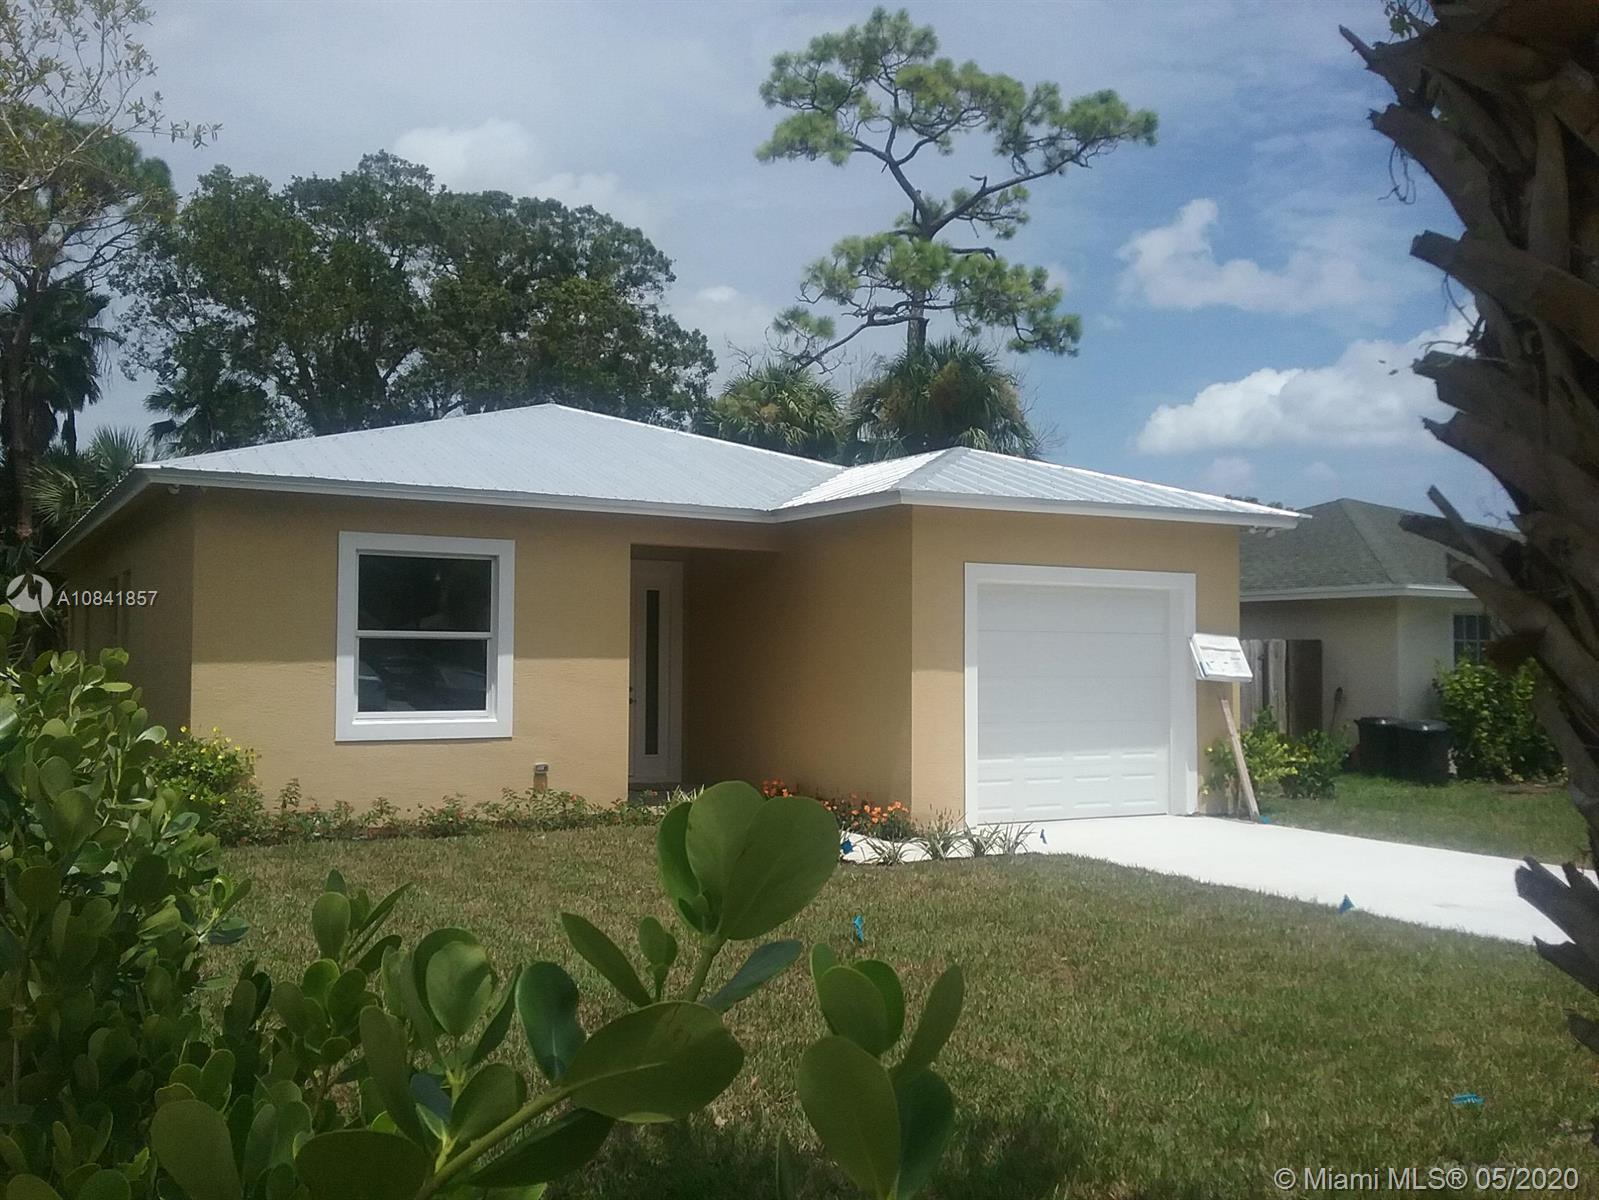 REDUCED! Upgraded Newer Jupiter 3 bedroom 2 baths 1470 Sq./Ft home with open floor plan, 10ft ceilin